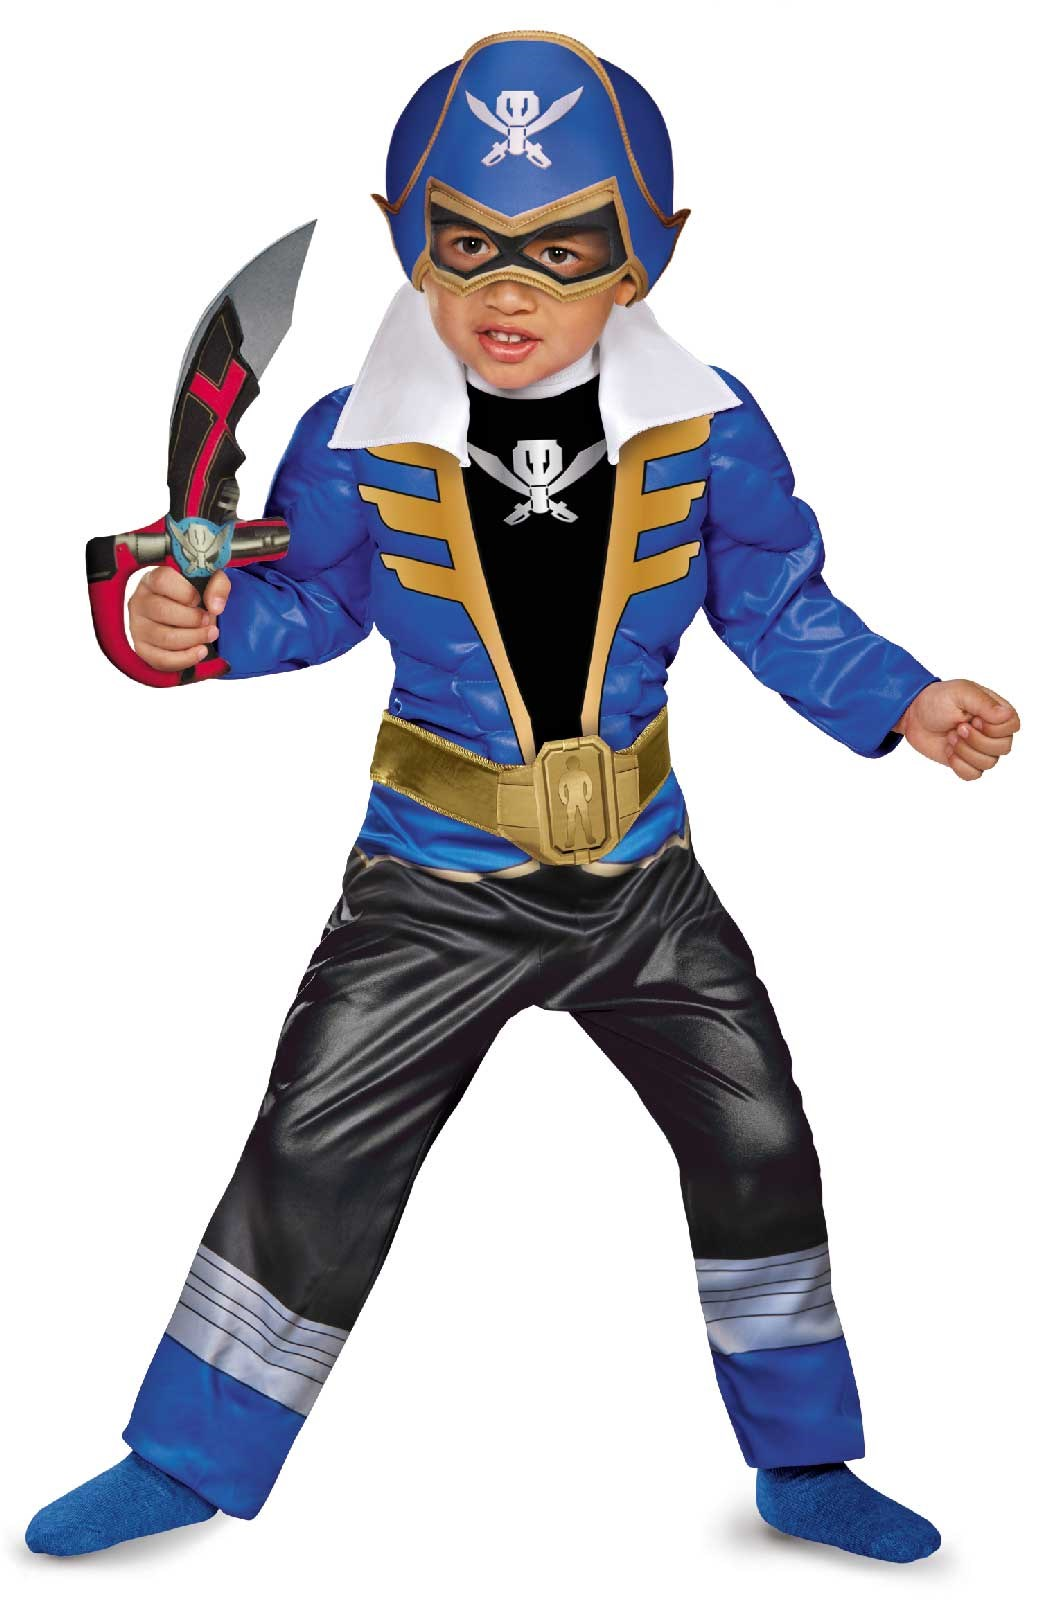 Power Ranger Super Megaforce - Blue Ranger Toddler / Child Muscle Costume 2T